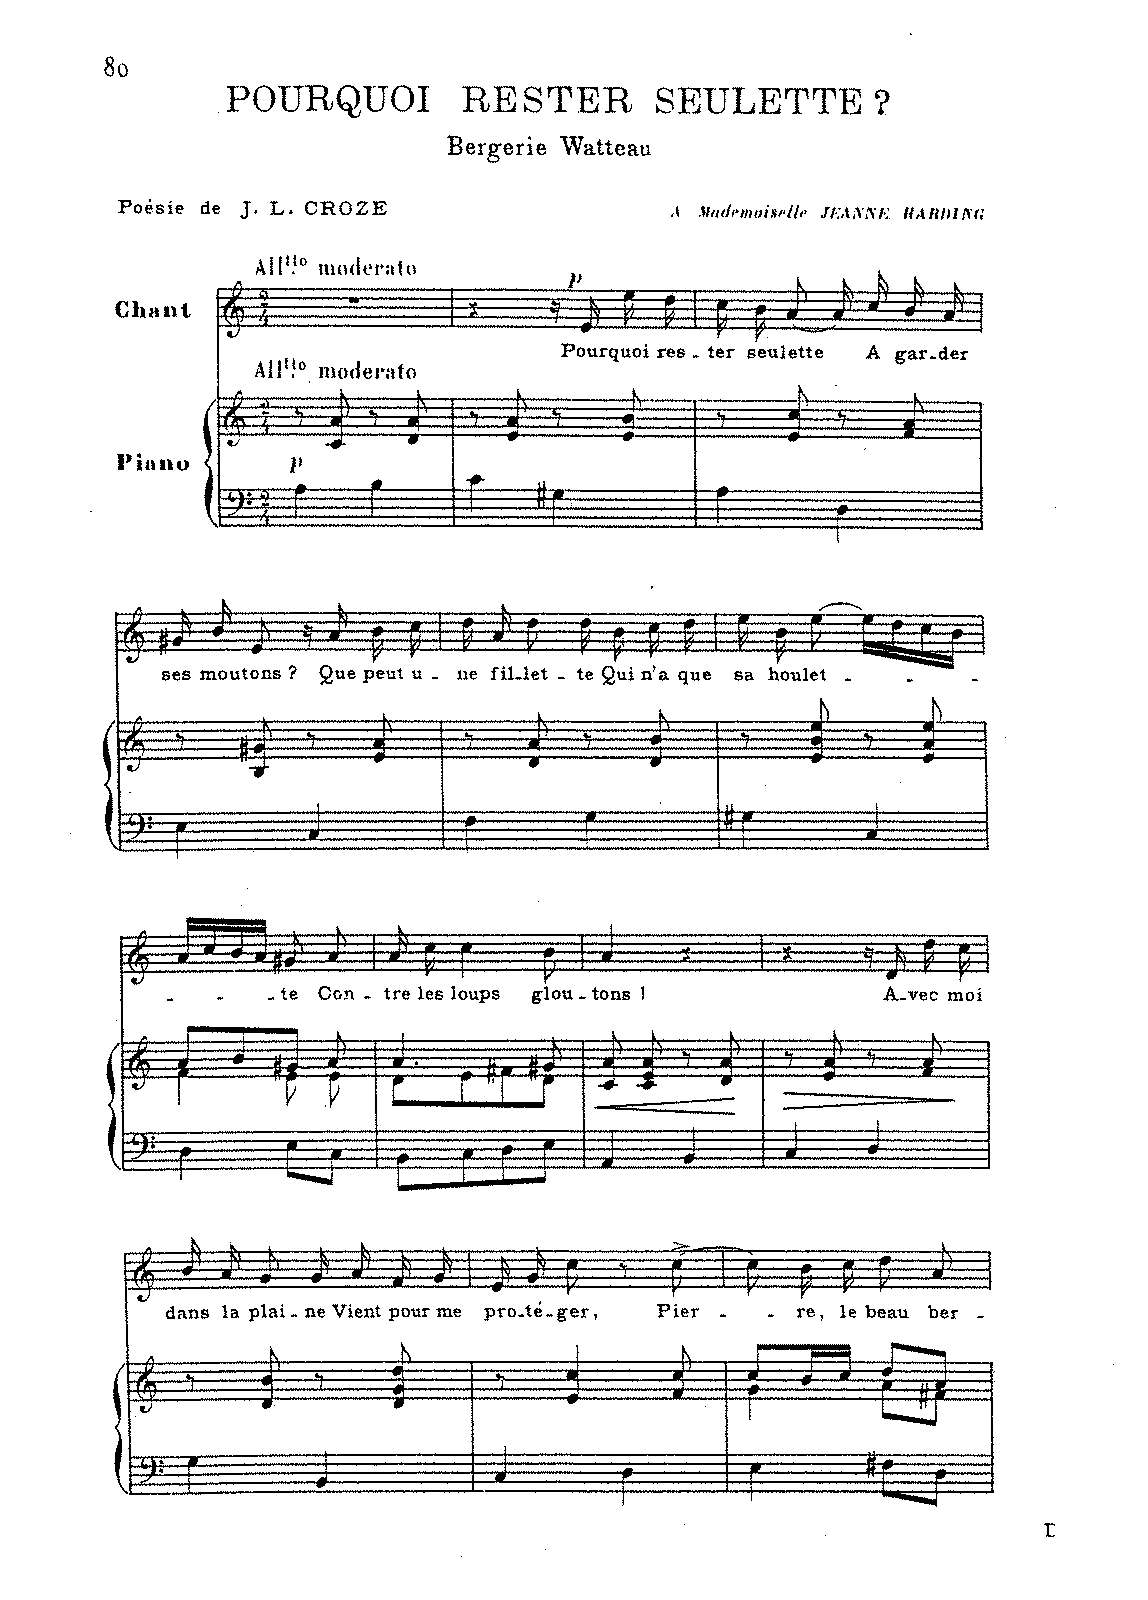 PMLP123173-Saint-Saëns - Pourquoi rester seulette (voice and piano).pdf